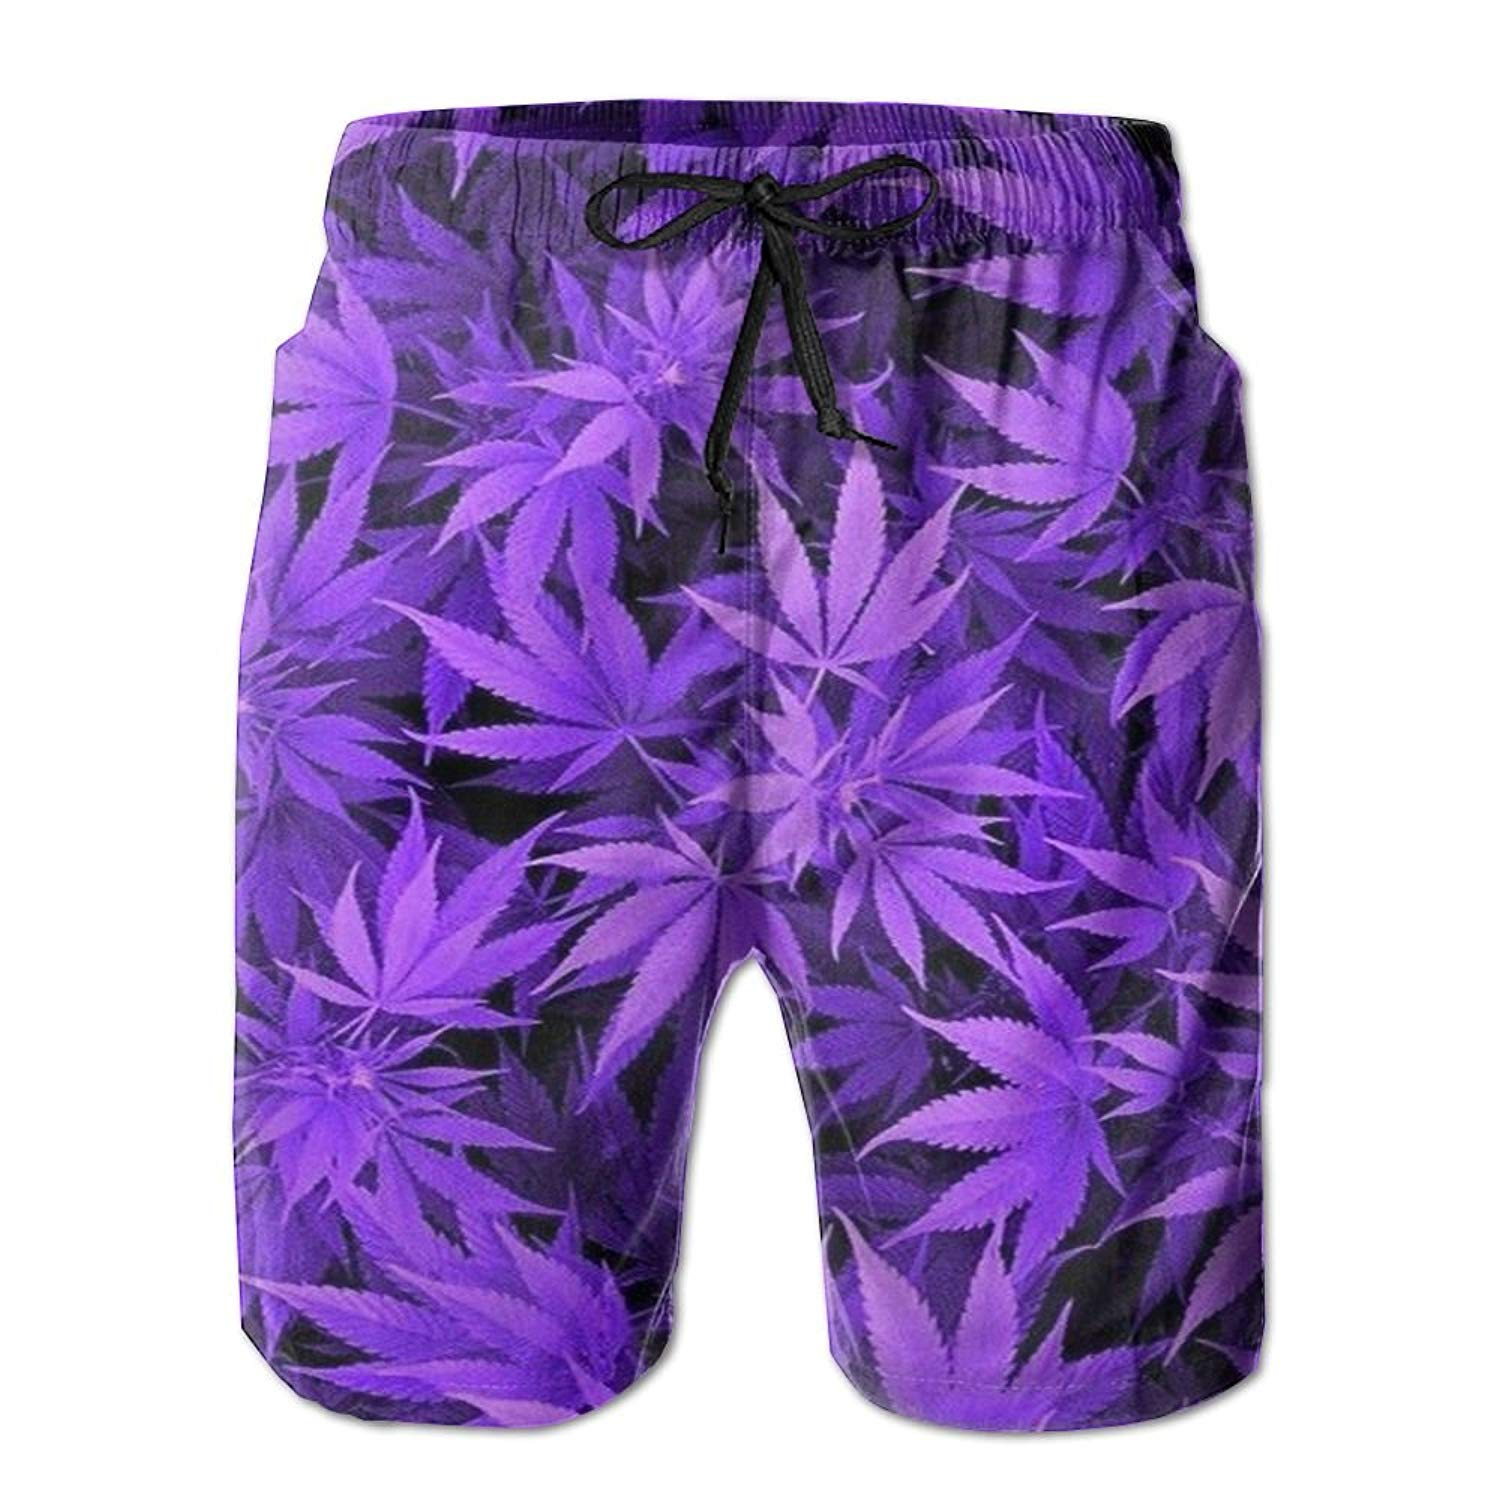 679e80a9cc Get Quotations · JINYOUR Purple Weed Men's Quick Dry Swim Trunks Beach Shorts  Boardshorts